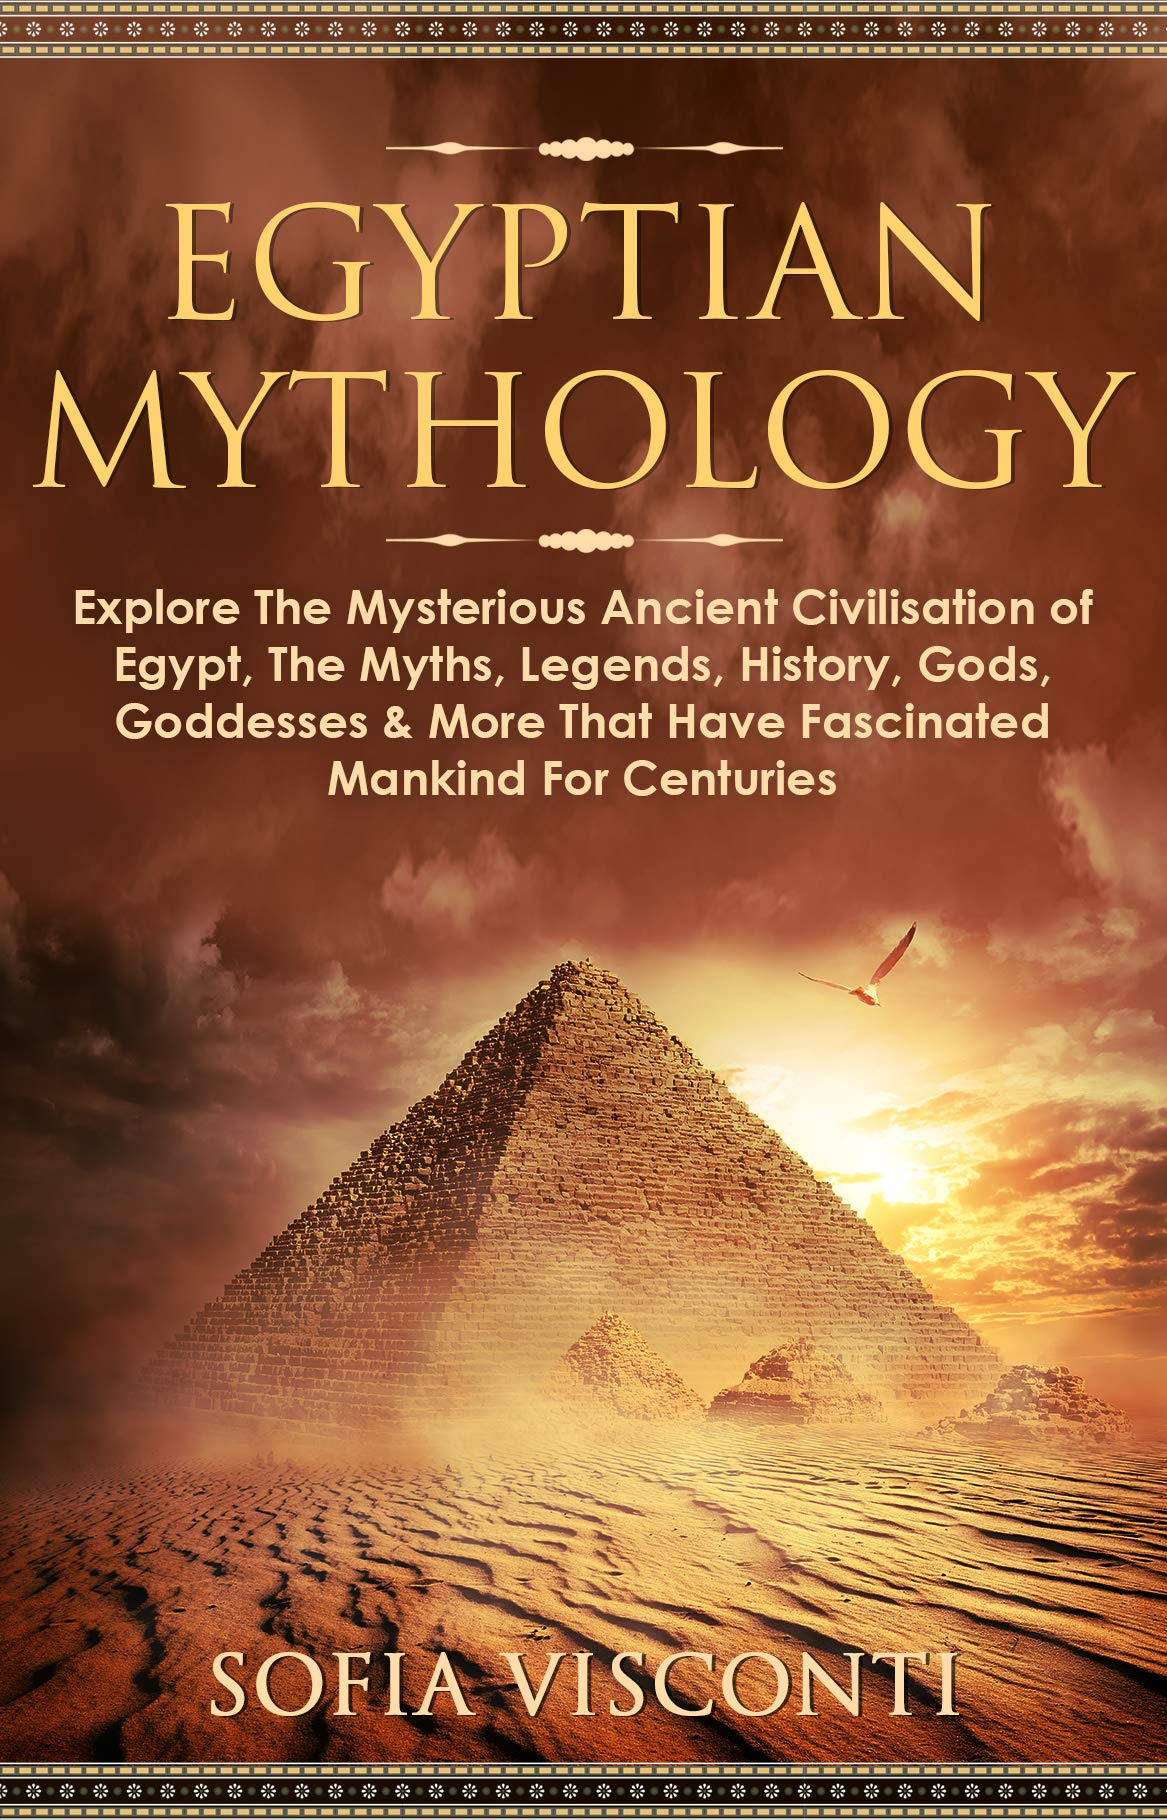 Egyptian Mythology: Explore The Mysterious Ancient Civilisation of Egypt, The Myths, Legends, History, Gods, Goddesses & More That Have Fascinated Mankind For Centuries